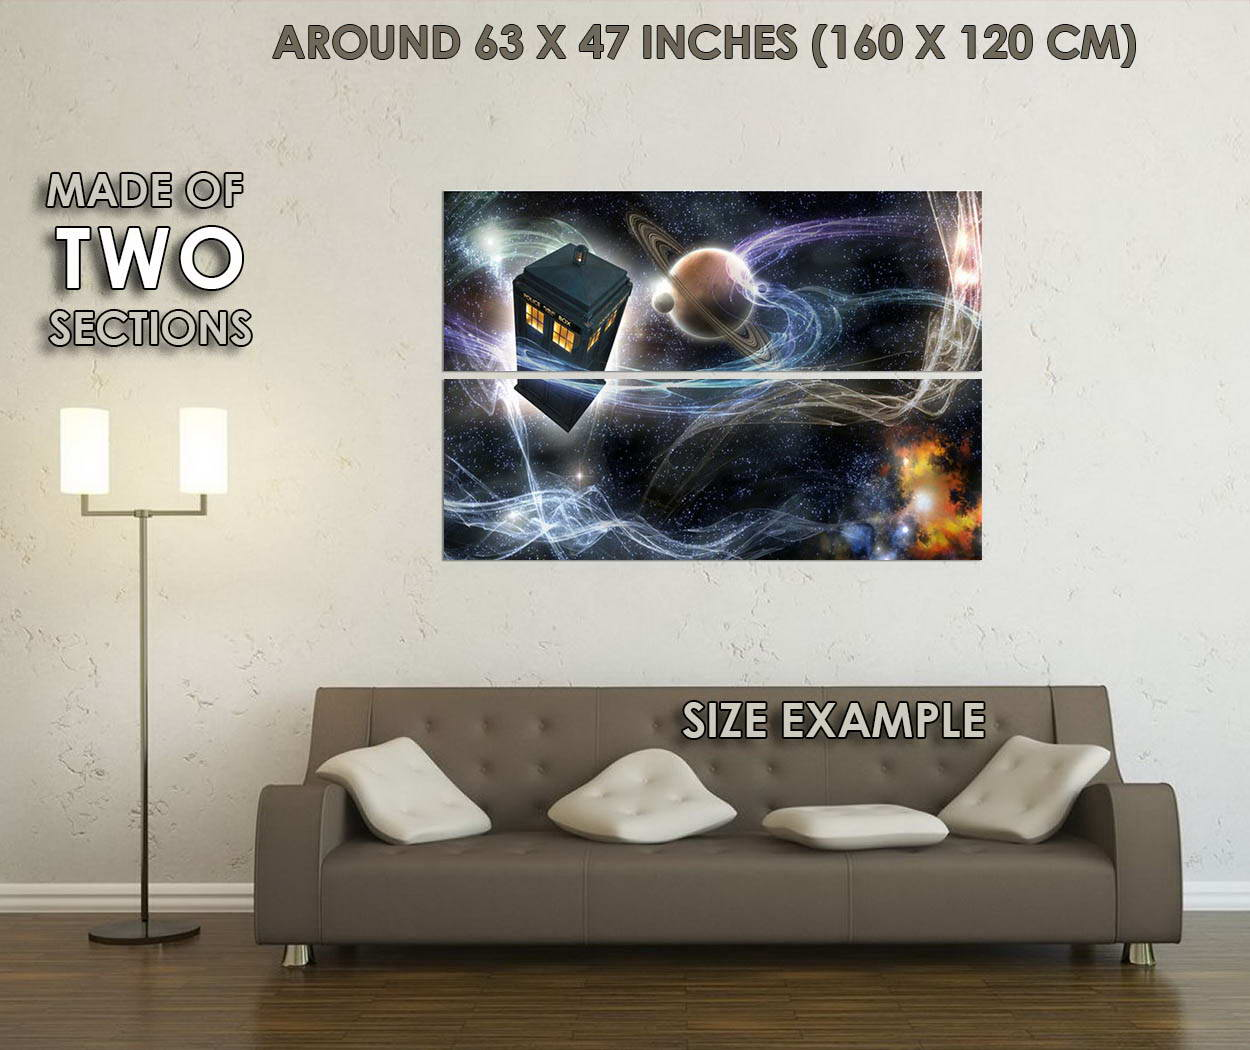 10134-Doctor-Who-9-TV-Series-Art-Police-Box-In-Space-LAMINATED-POSTER-CA thumbnail 6